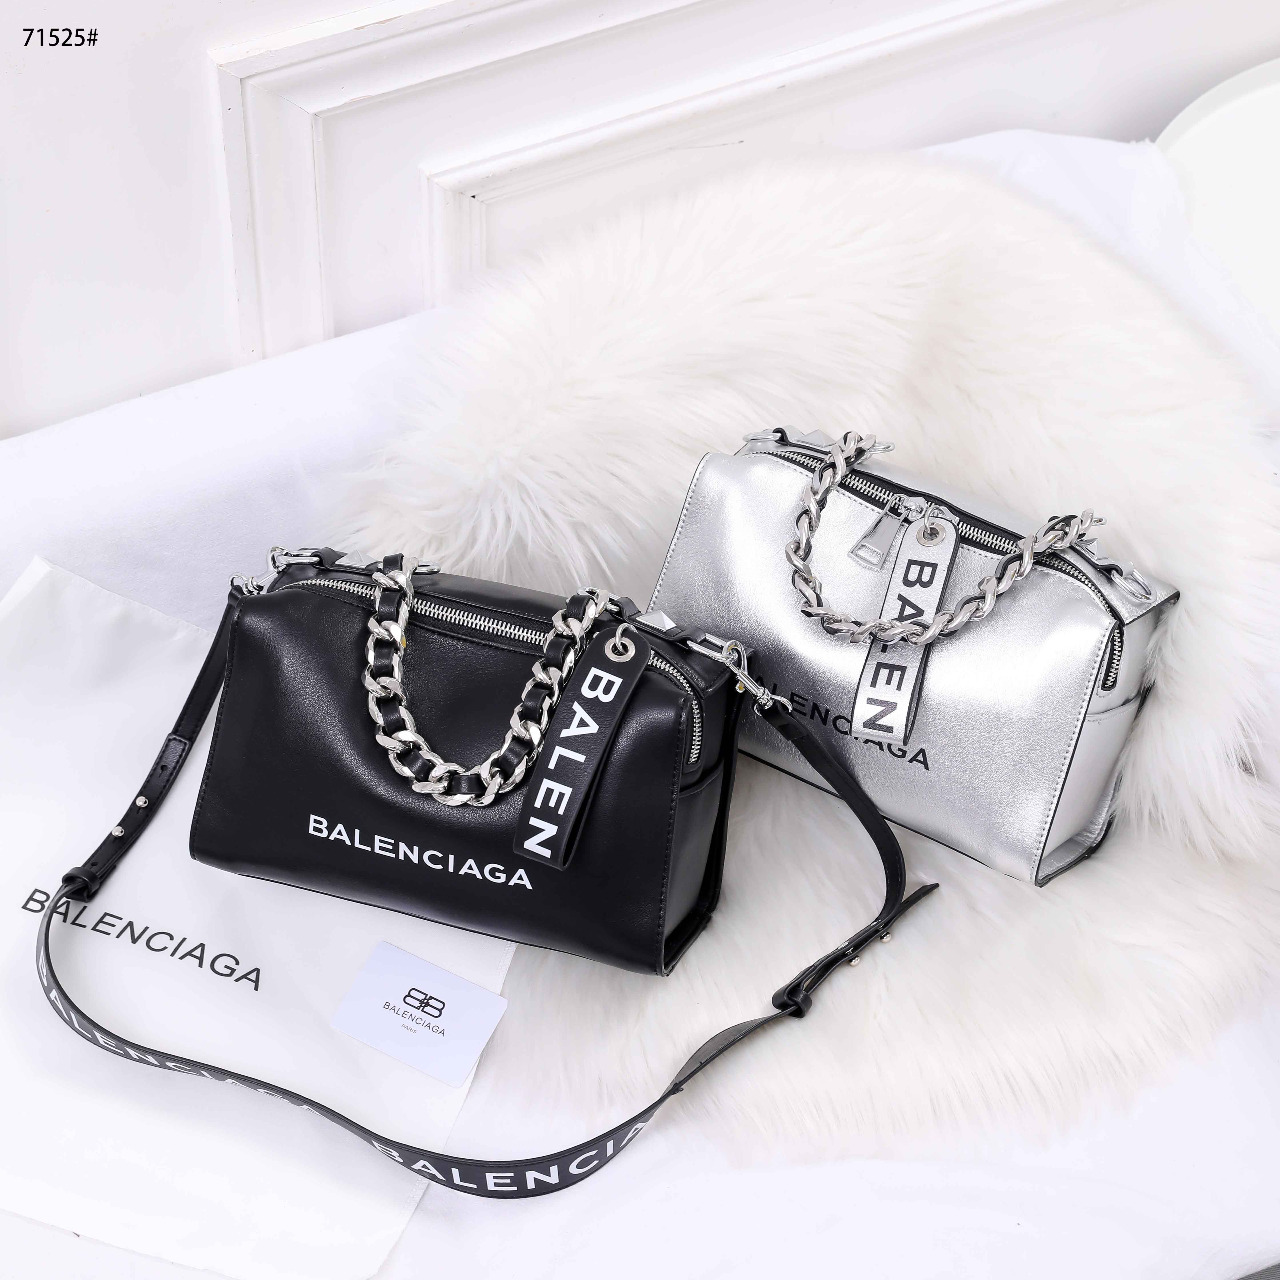 Balenciaga Leather Handbag Should Bag